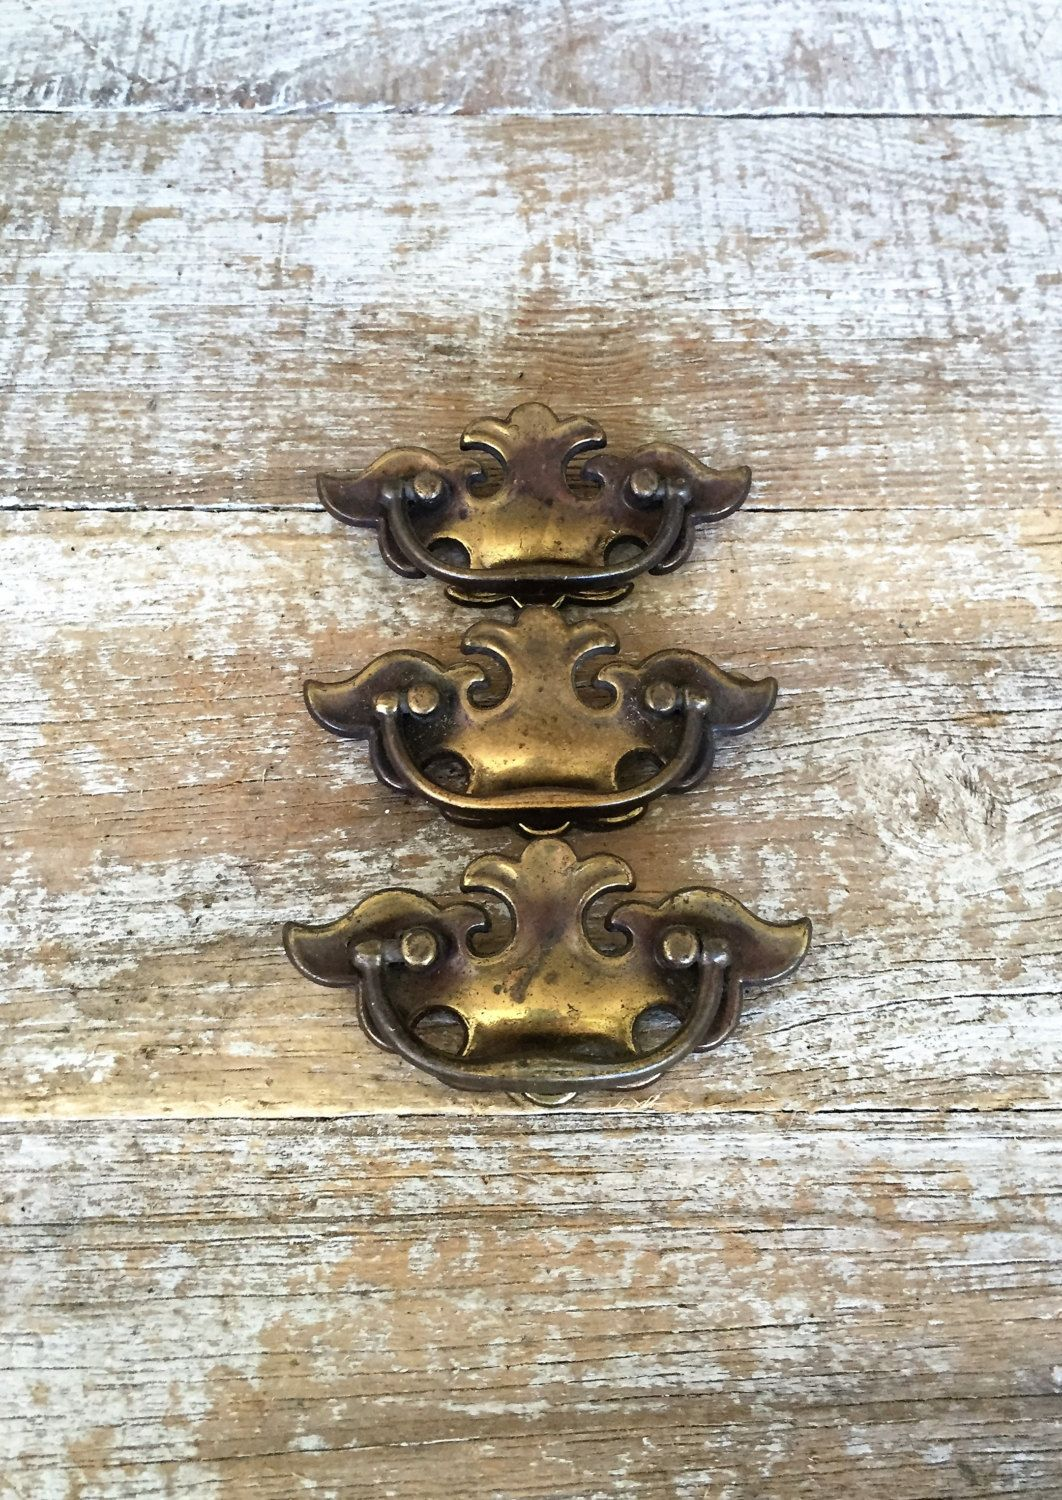 Drawer Handles 3 Chippendale Drawer Pulls Antique Hardware Brass Handles Vintage Dresser Hardware Salva Antique Hardware Dresser Hardware Vintage Drawer Pulls